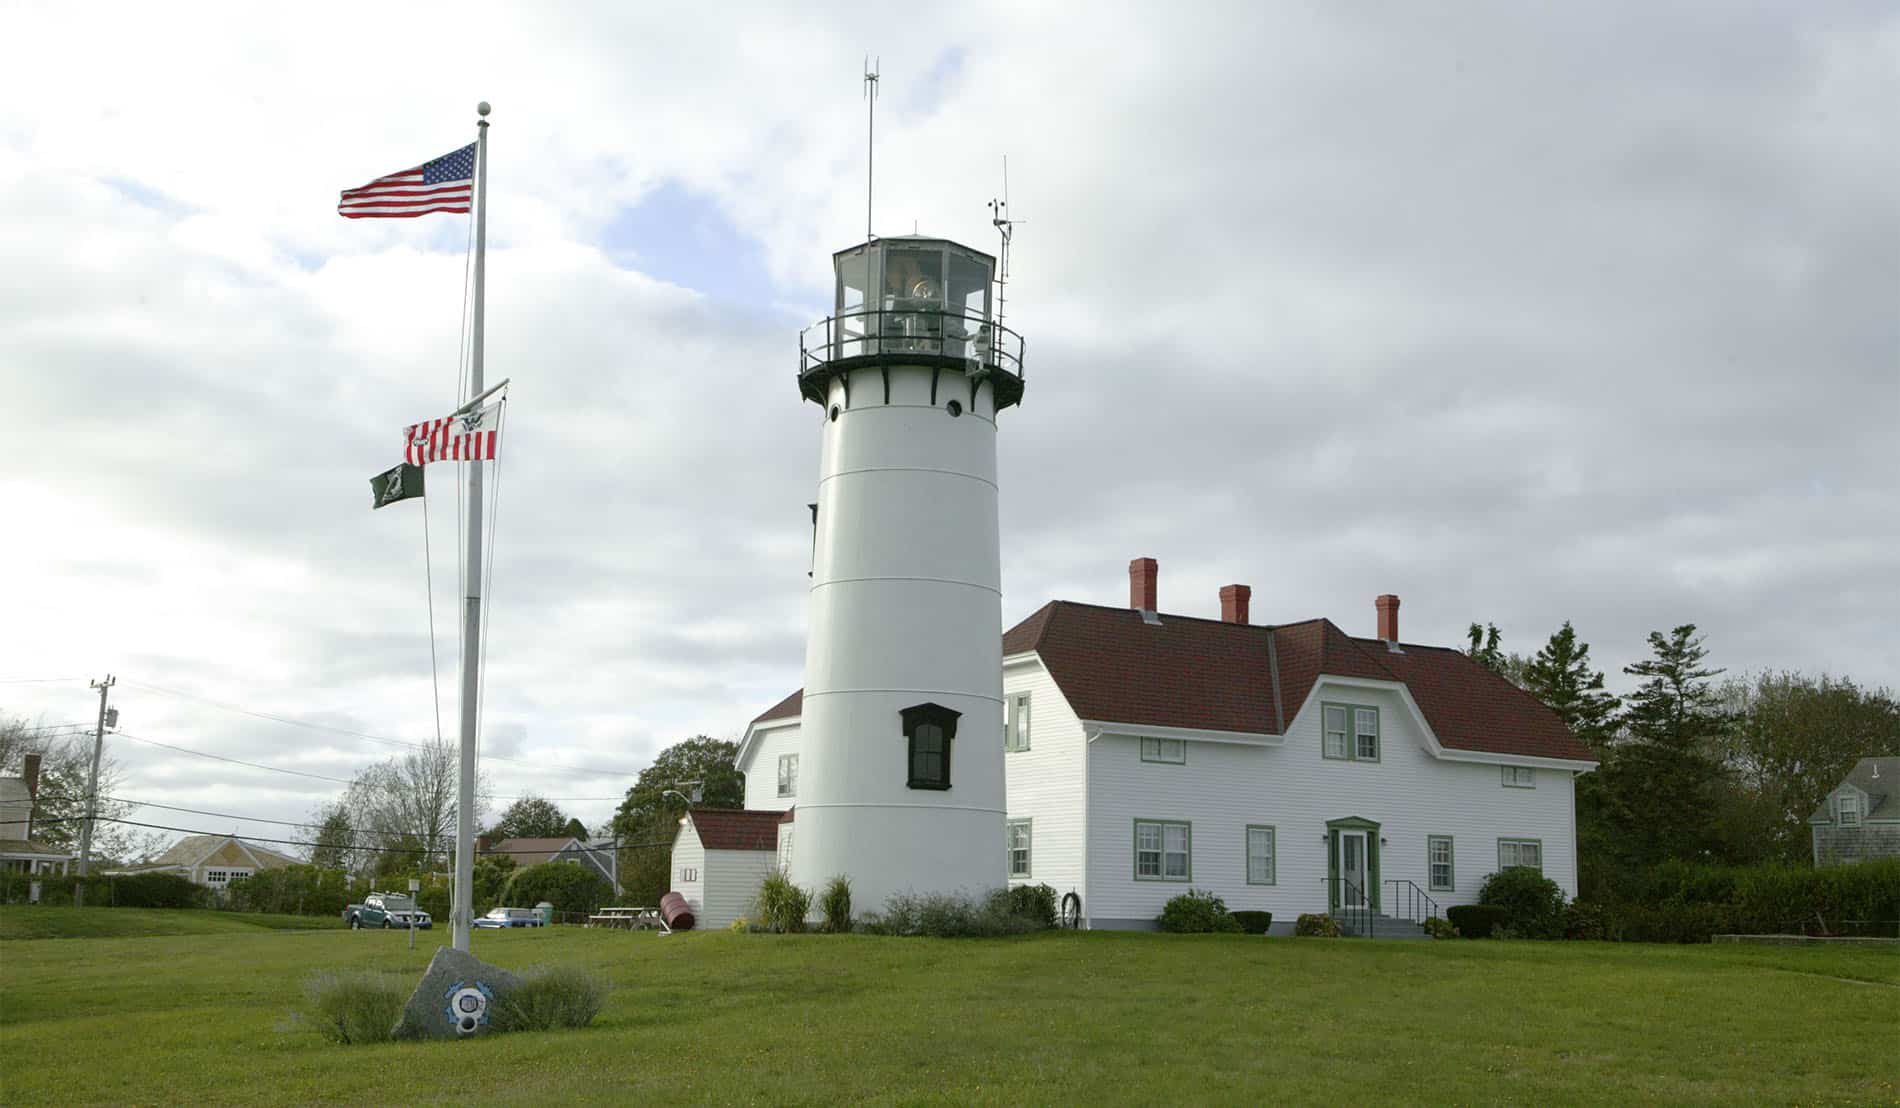 Chatham Lighthouse with sprawling green lawn and American flag in front